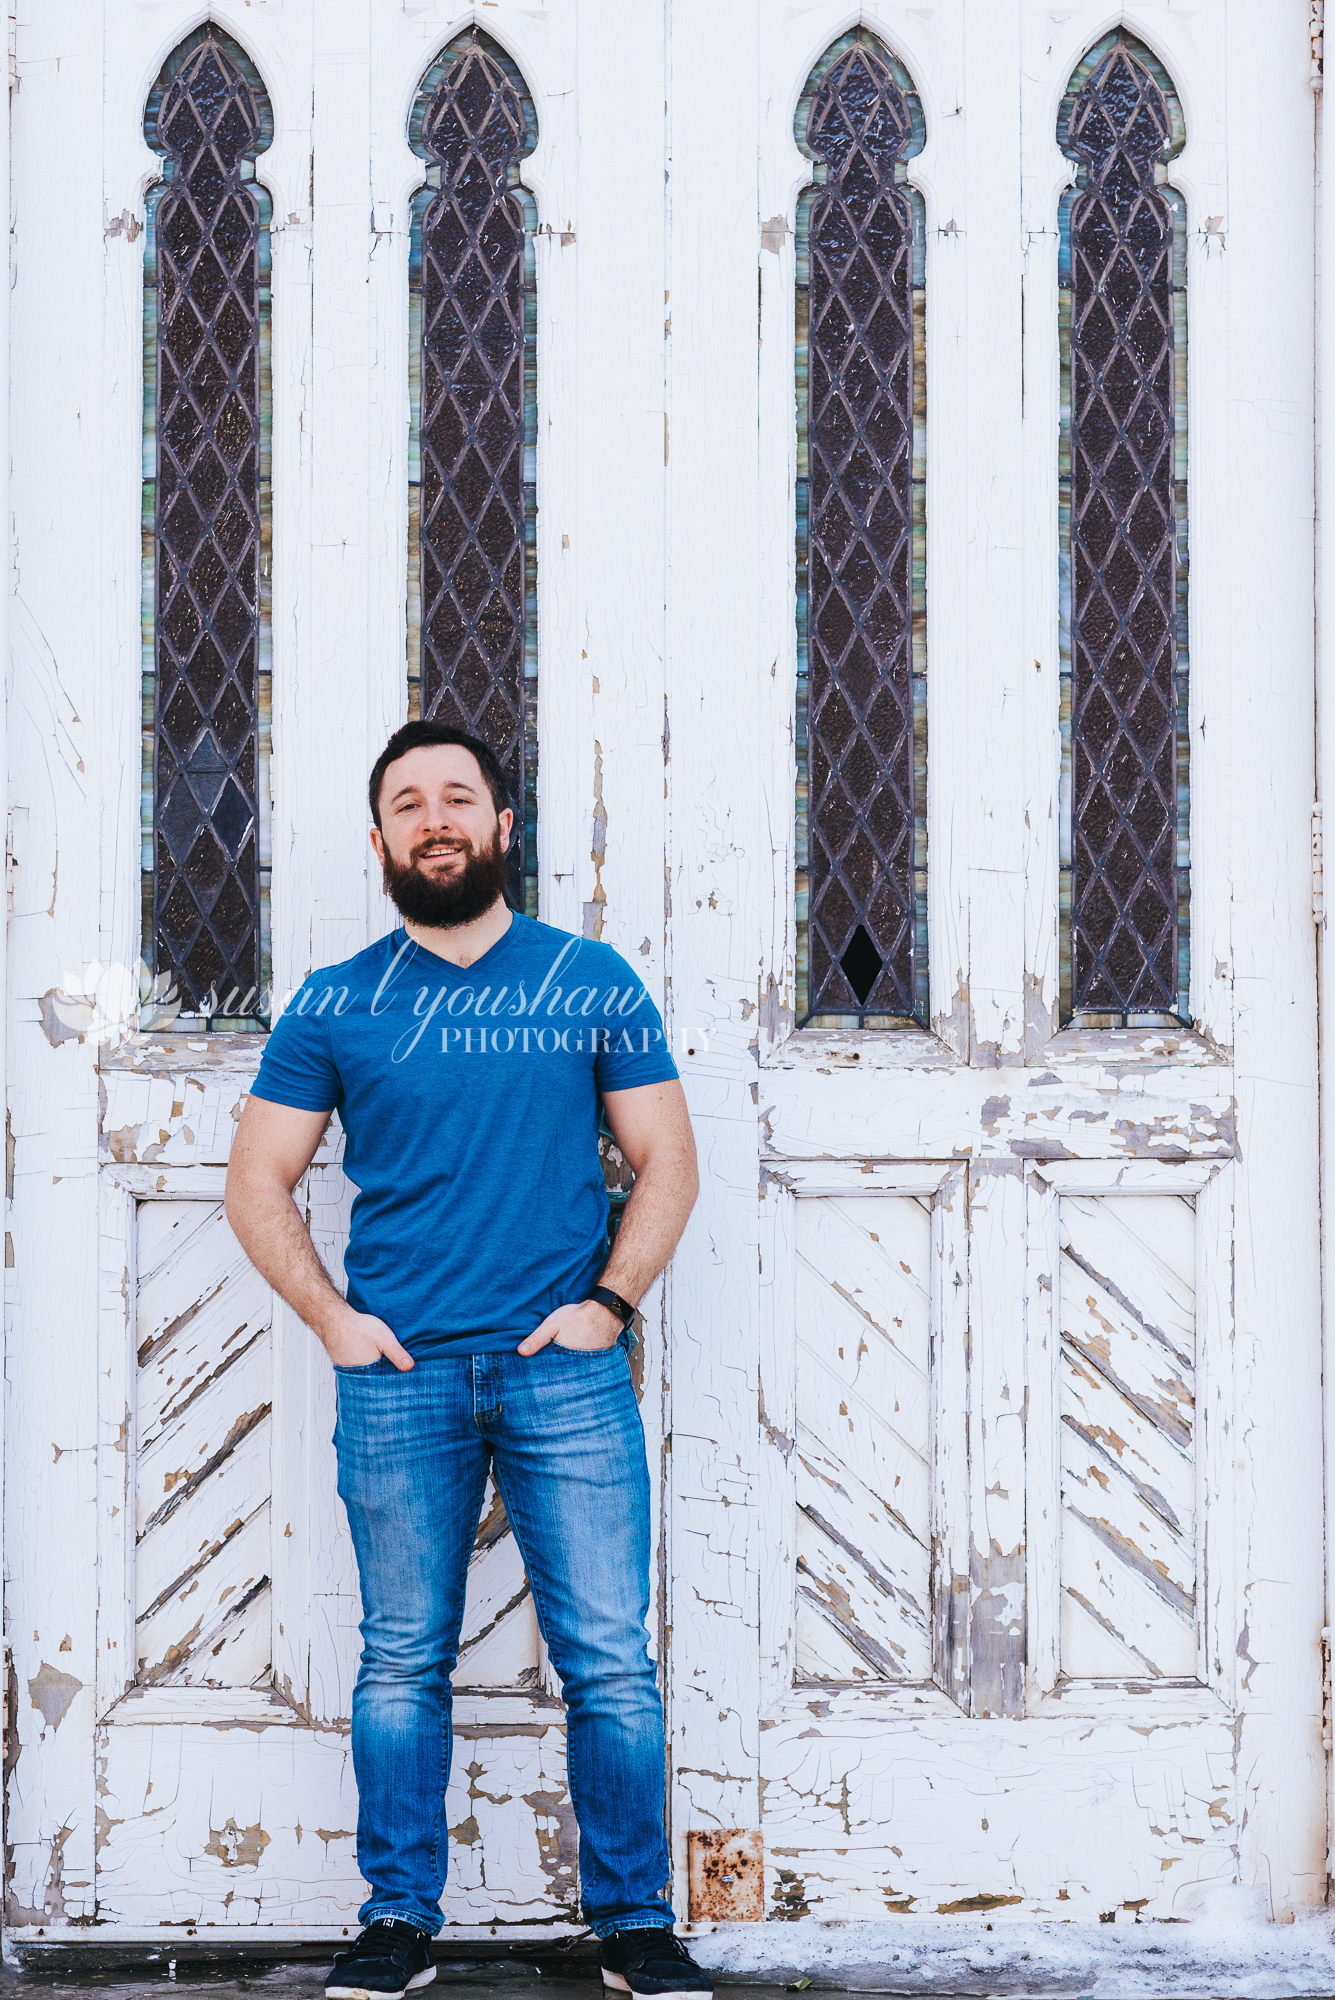 Refuge Youth Network Headshots 02-04-2019 sly photography blog-7.jpg